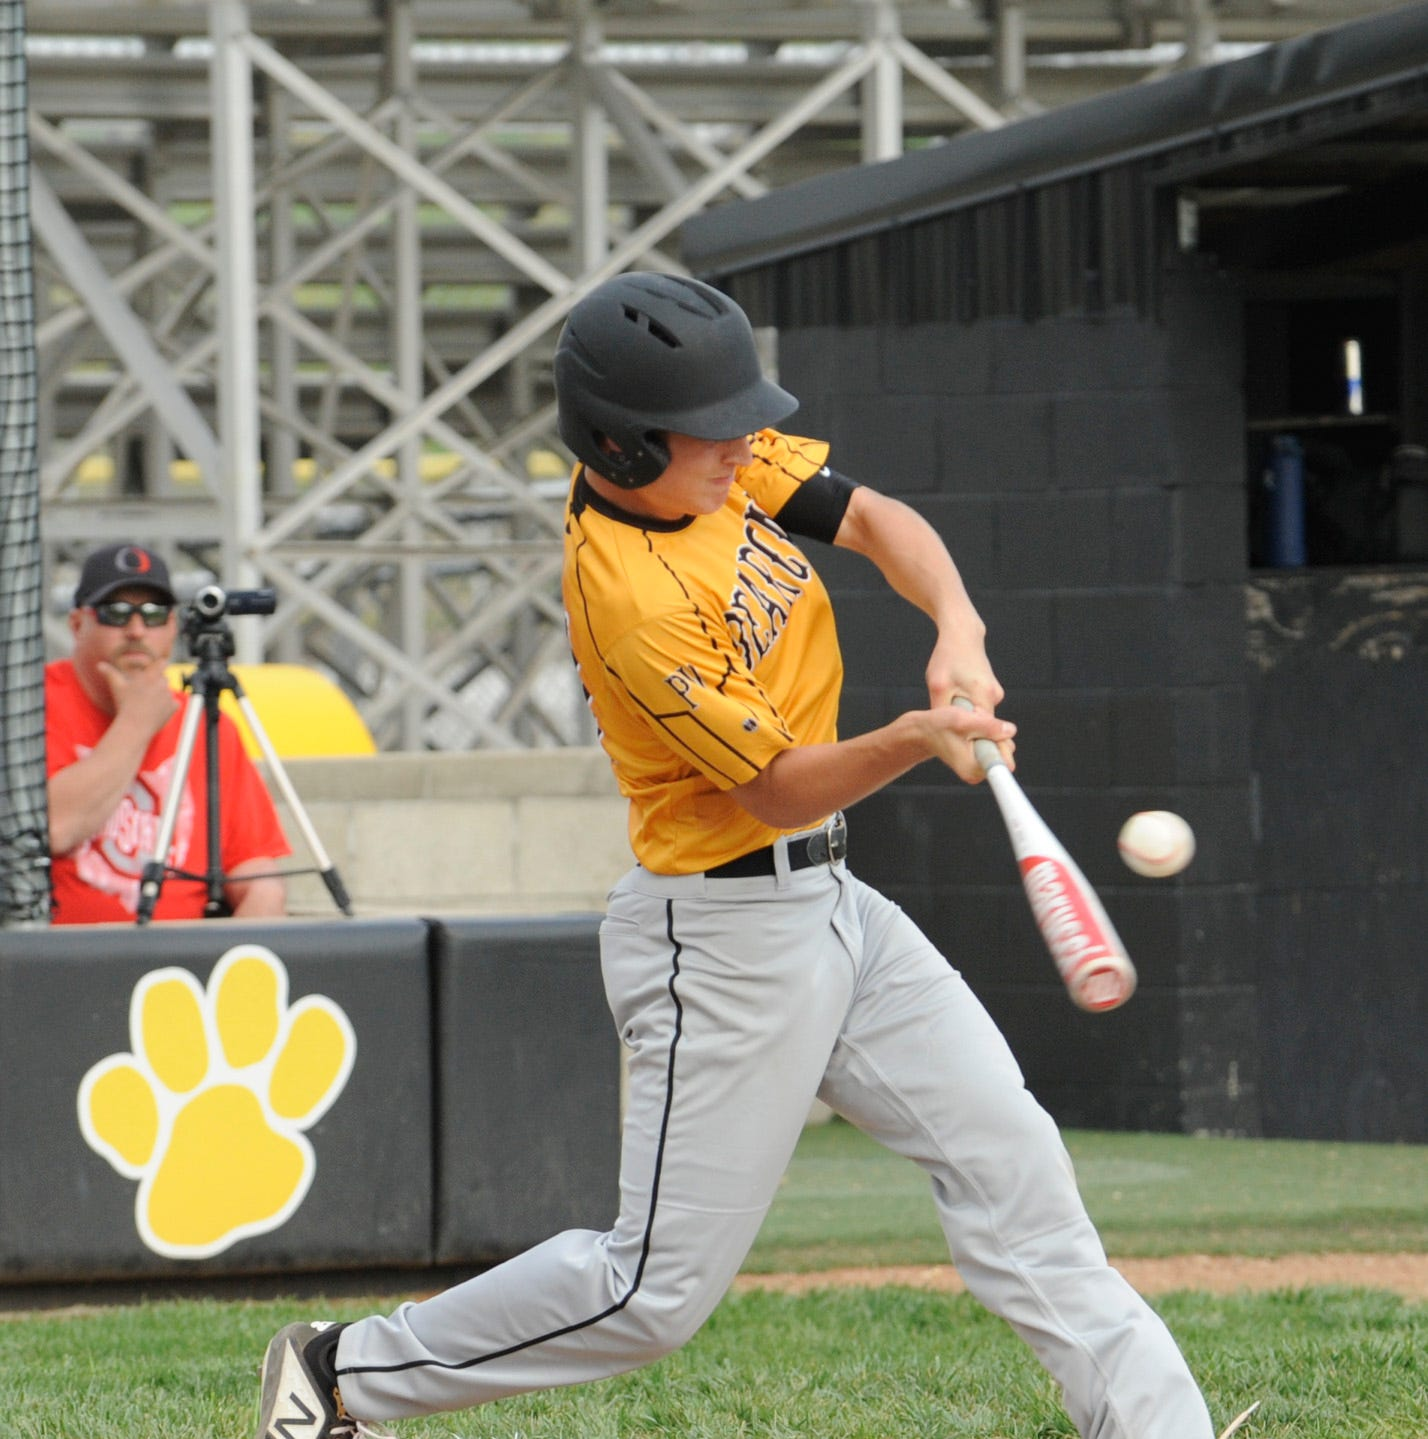 OHIO HS BASEBALL: Newland walk-off RBI leads Paint Valley to 10-9 win over Westfall